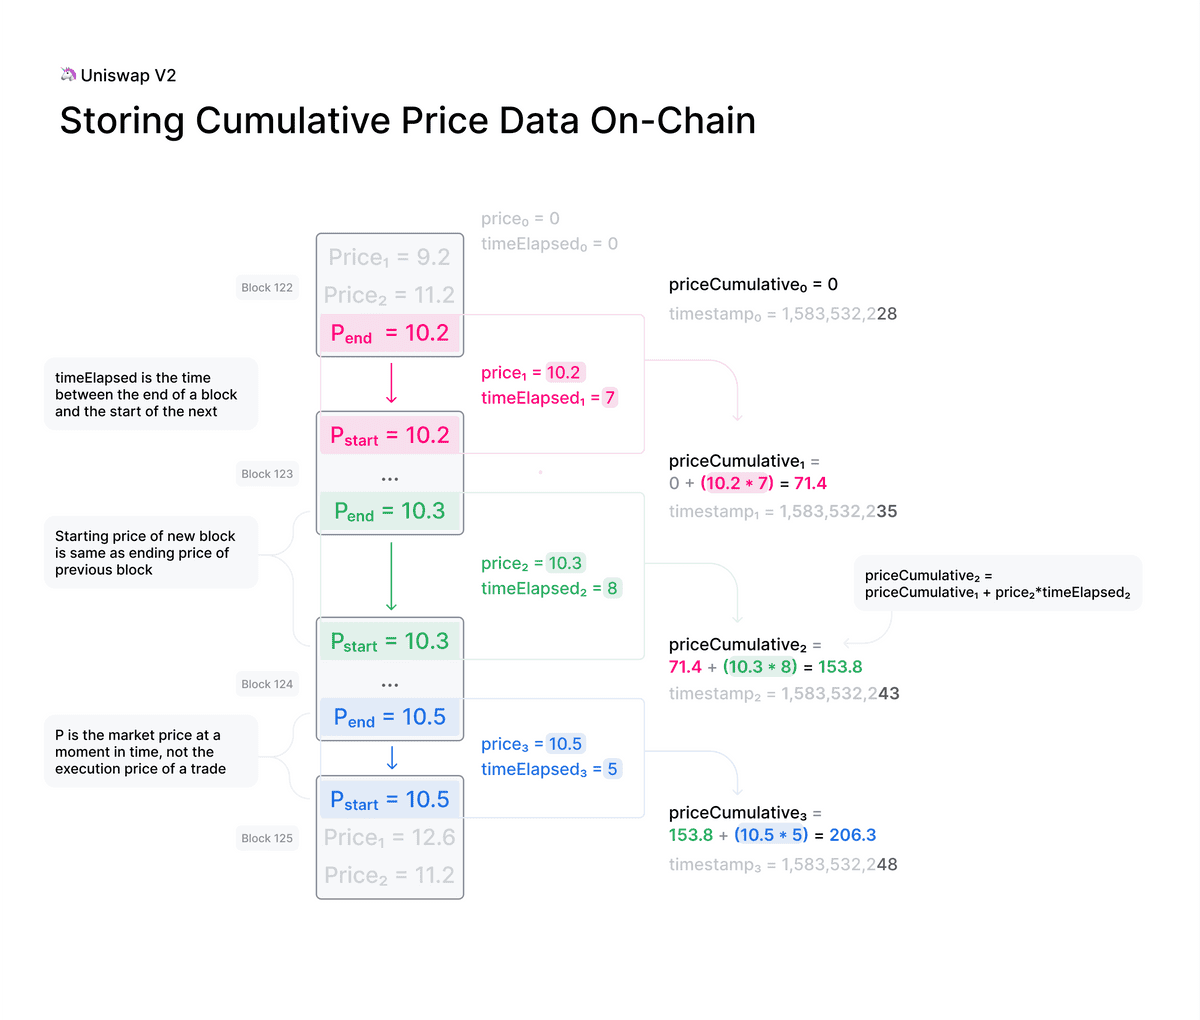 v2 onchain price data